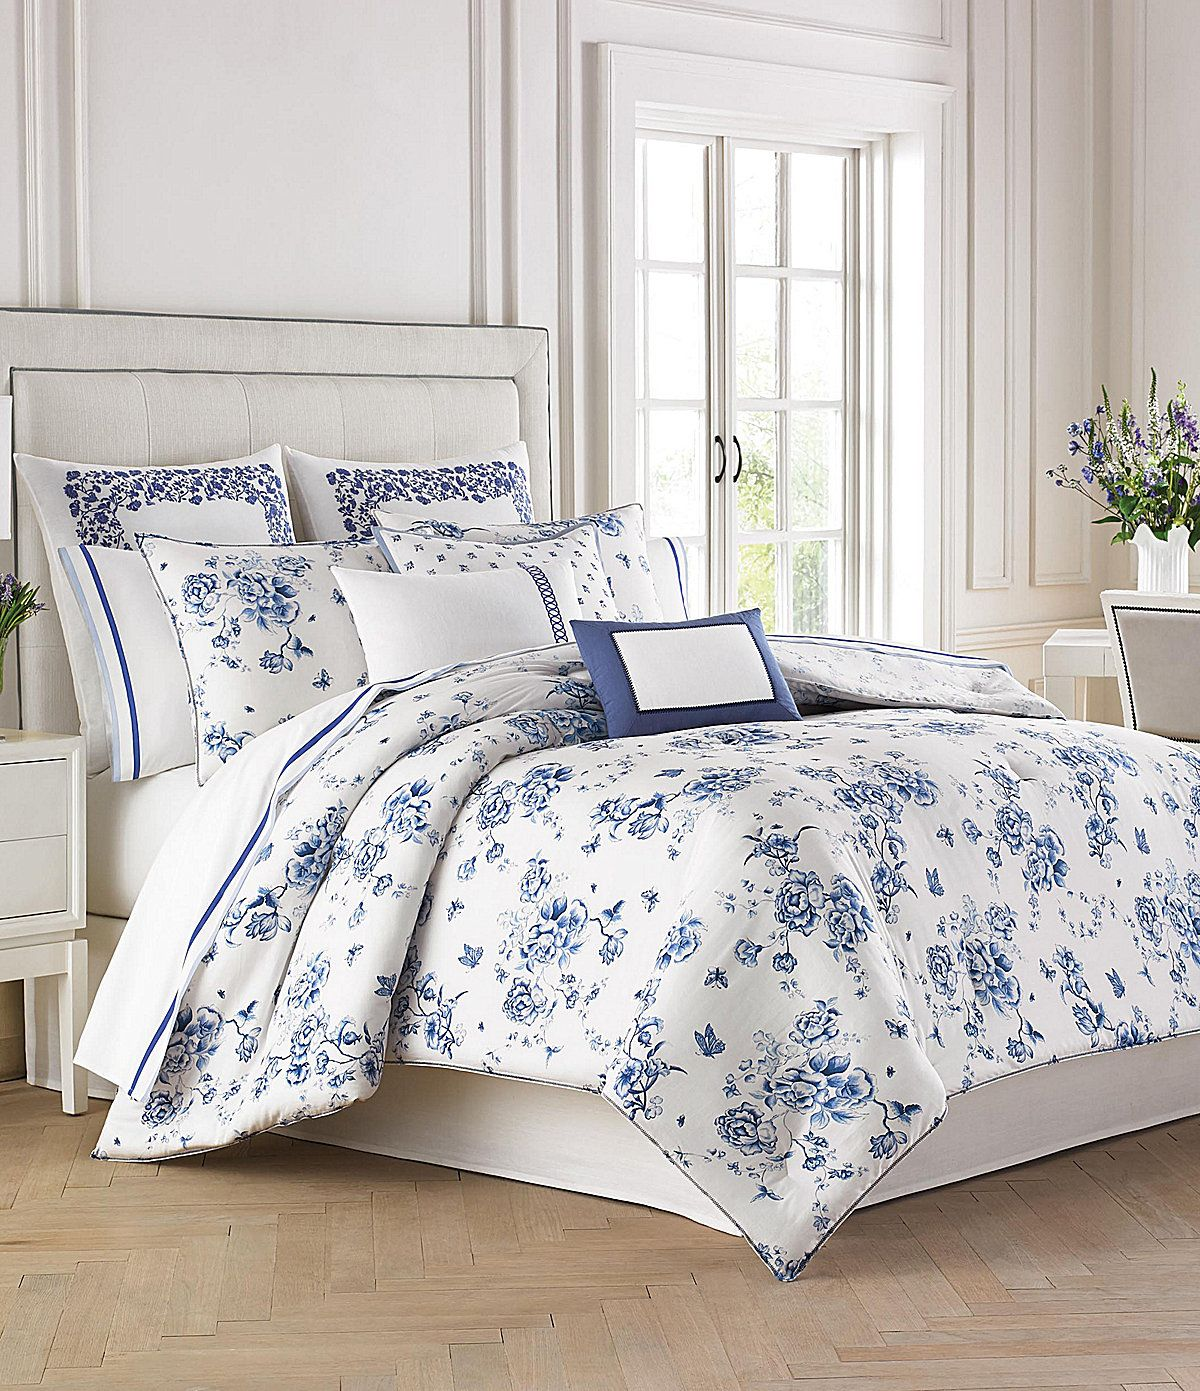 Wedgwood China Blue Floral Bedding Collection Dillards